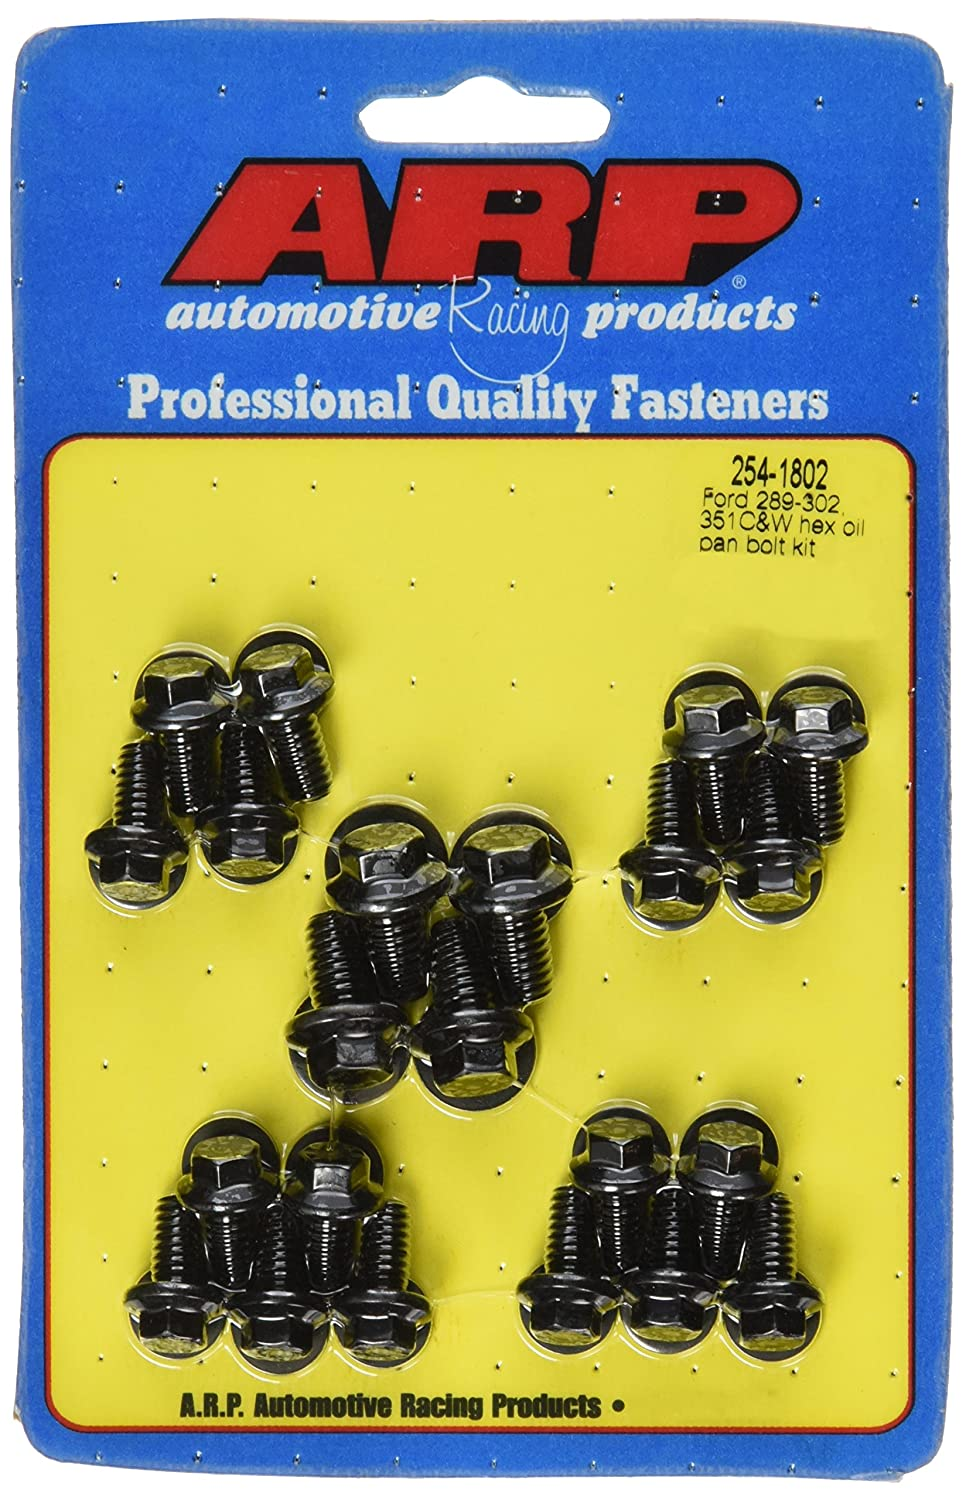 ARP 2541802 Black Oxide Oil Pan Hex Bolt Kit 254-1802